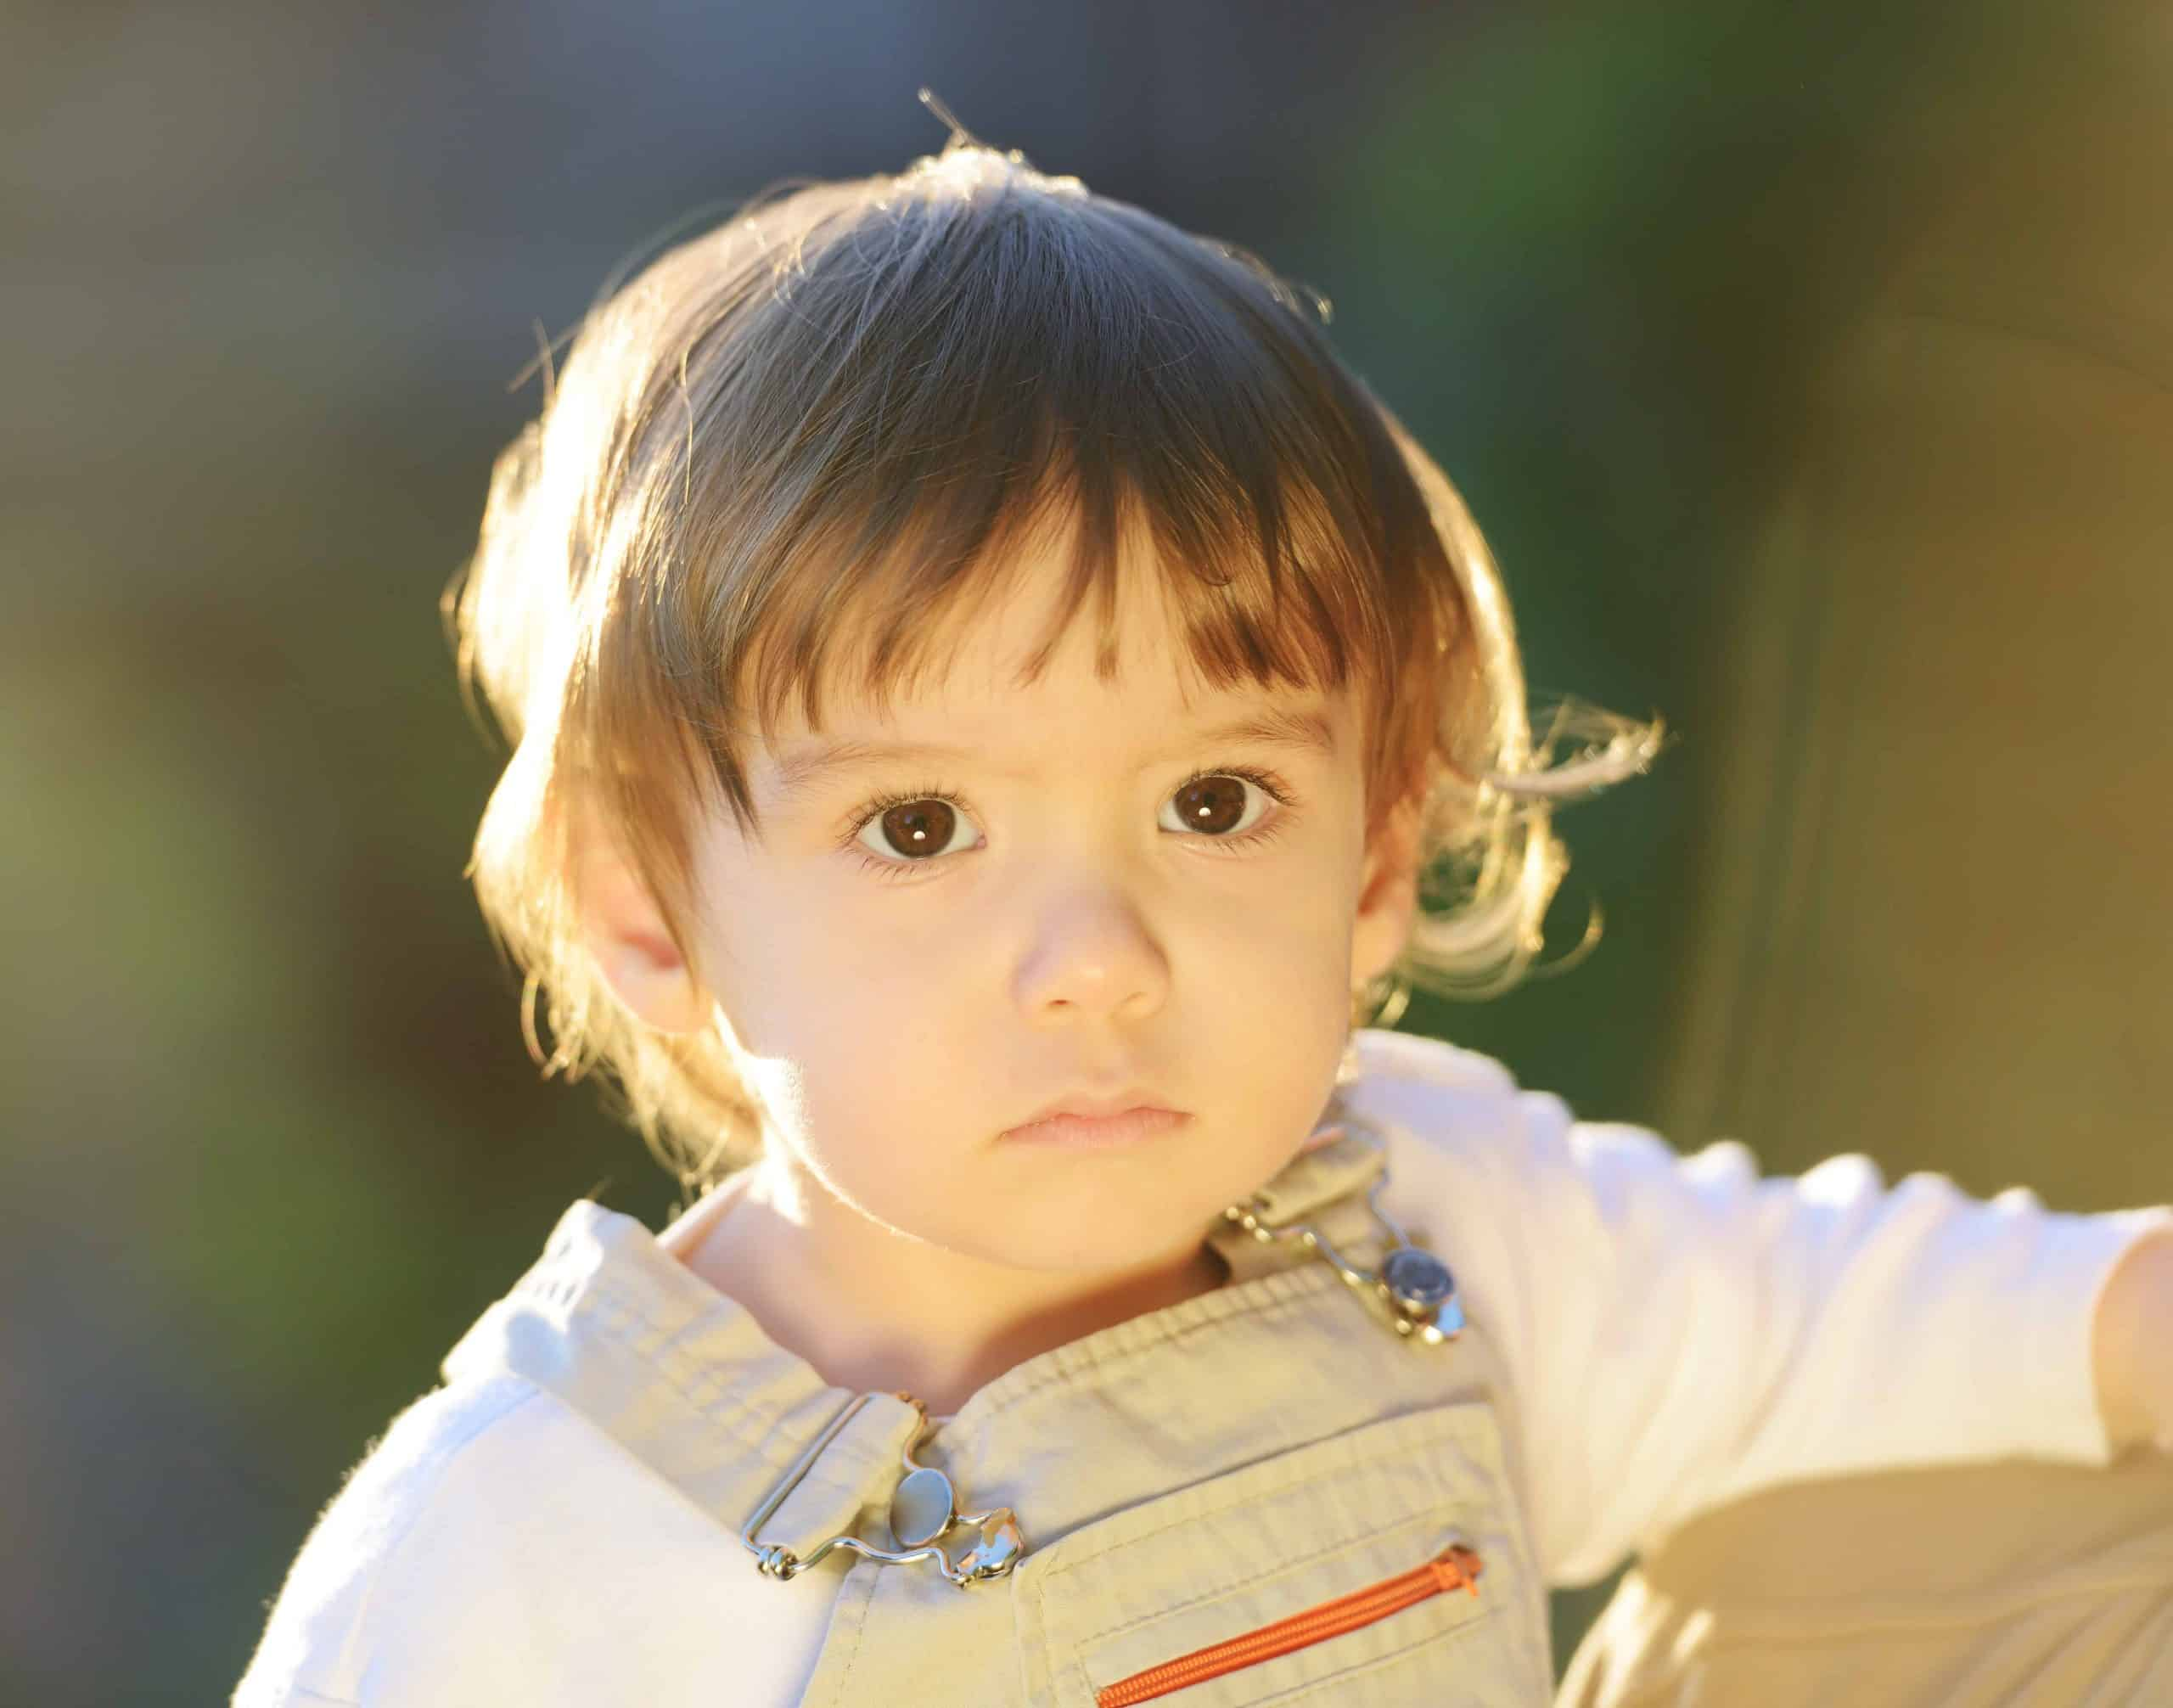 Raising Super kids or dependent adults